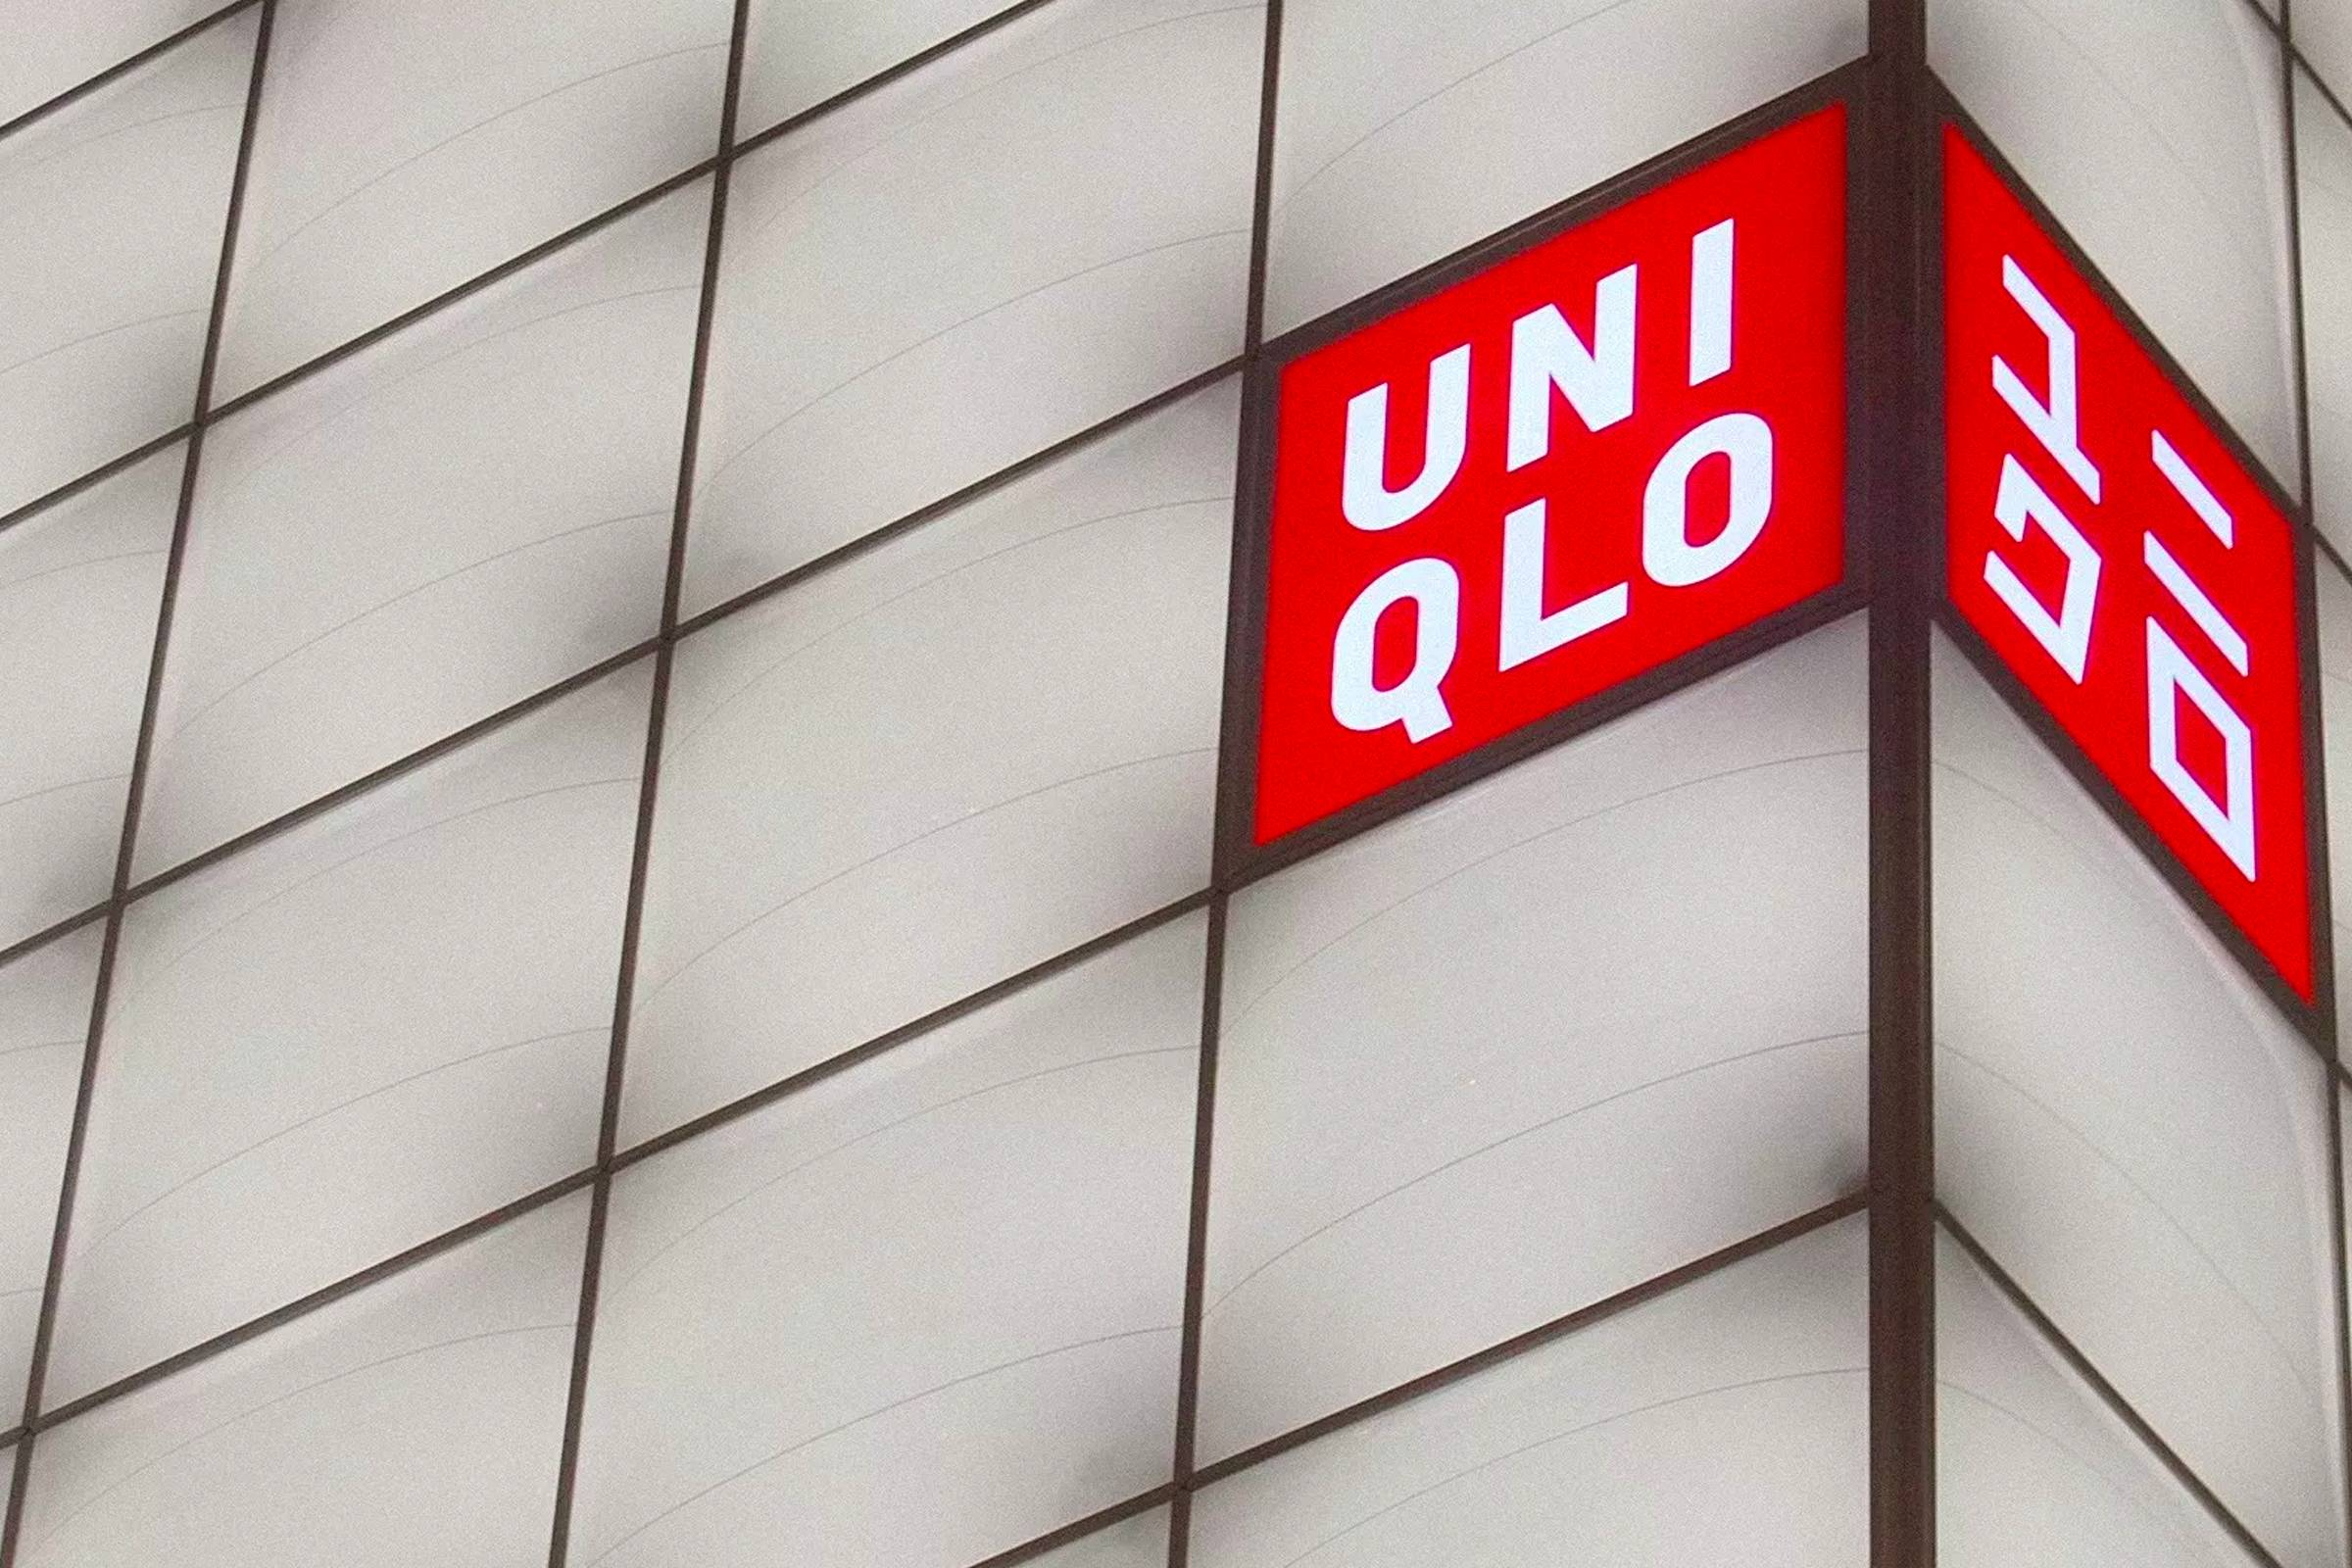 Uniqlo's July same-store sales rise up 4%